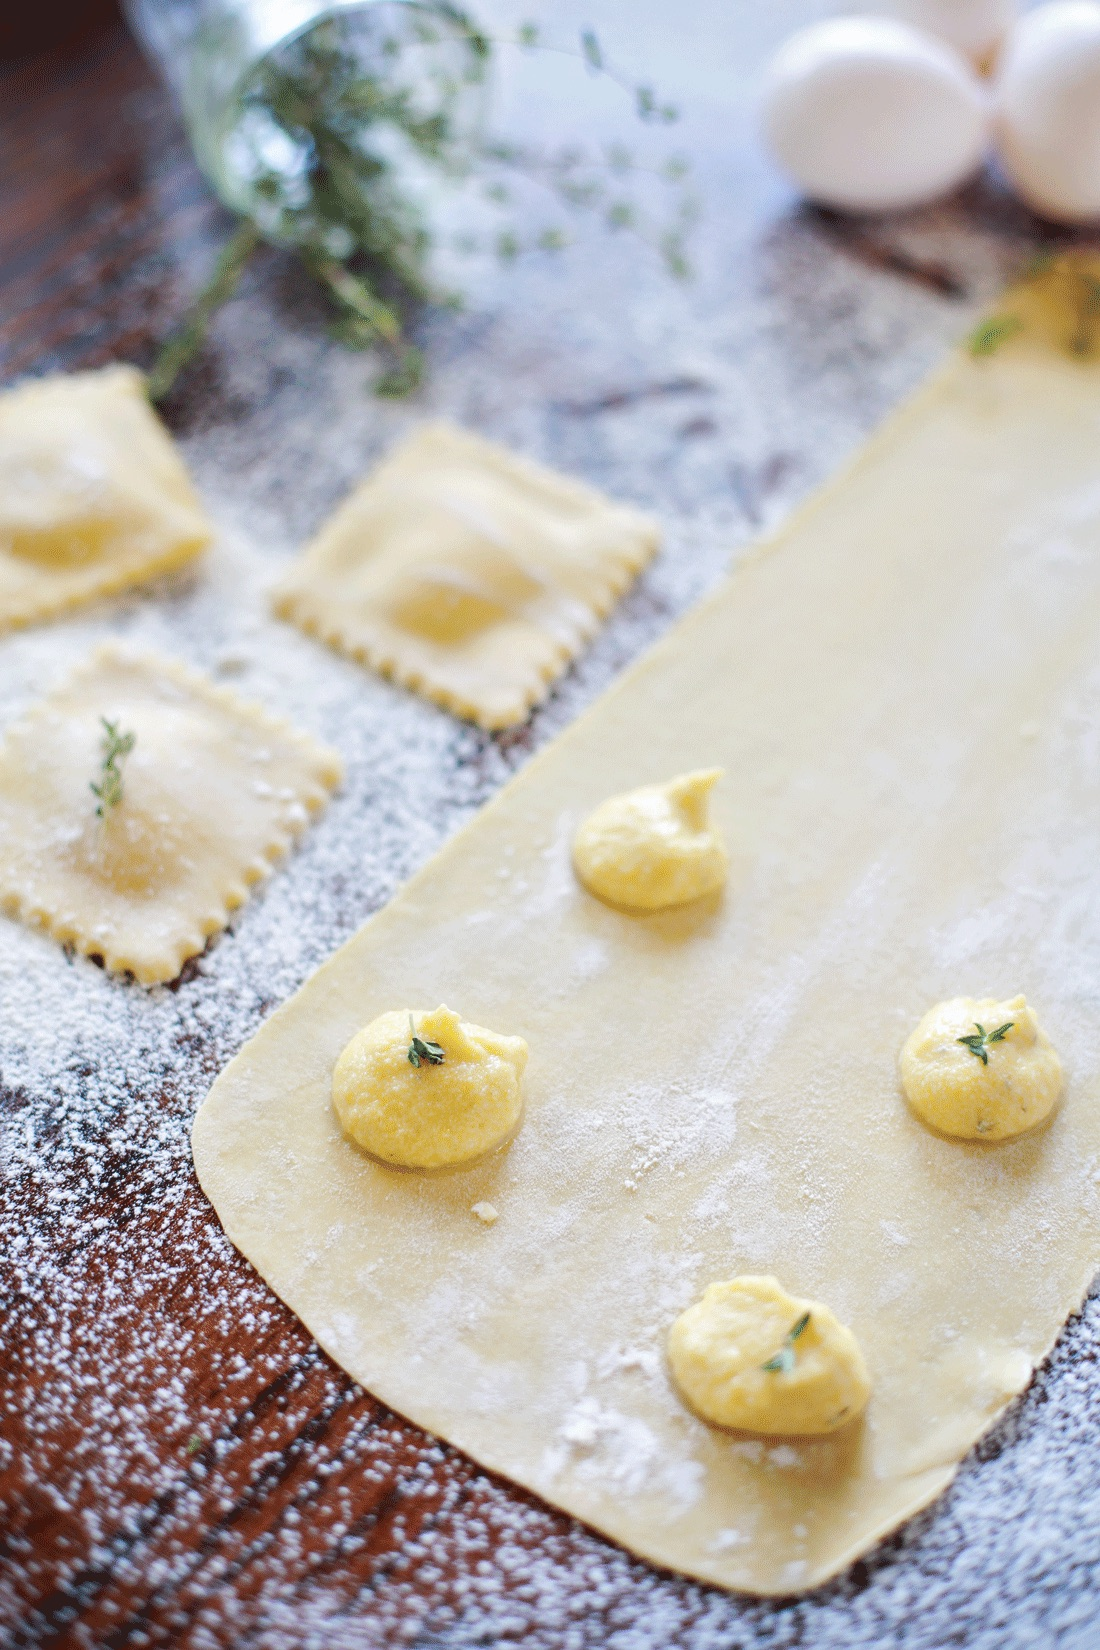 How to make ravioli from scratch